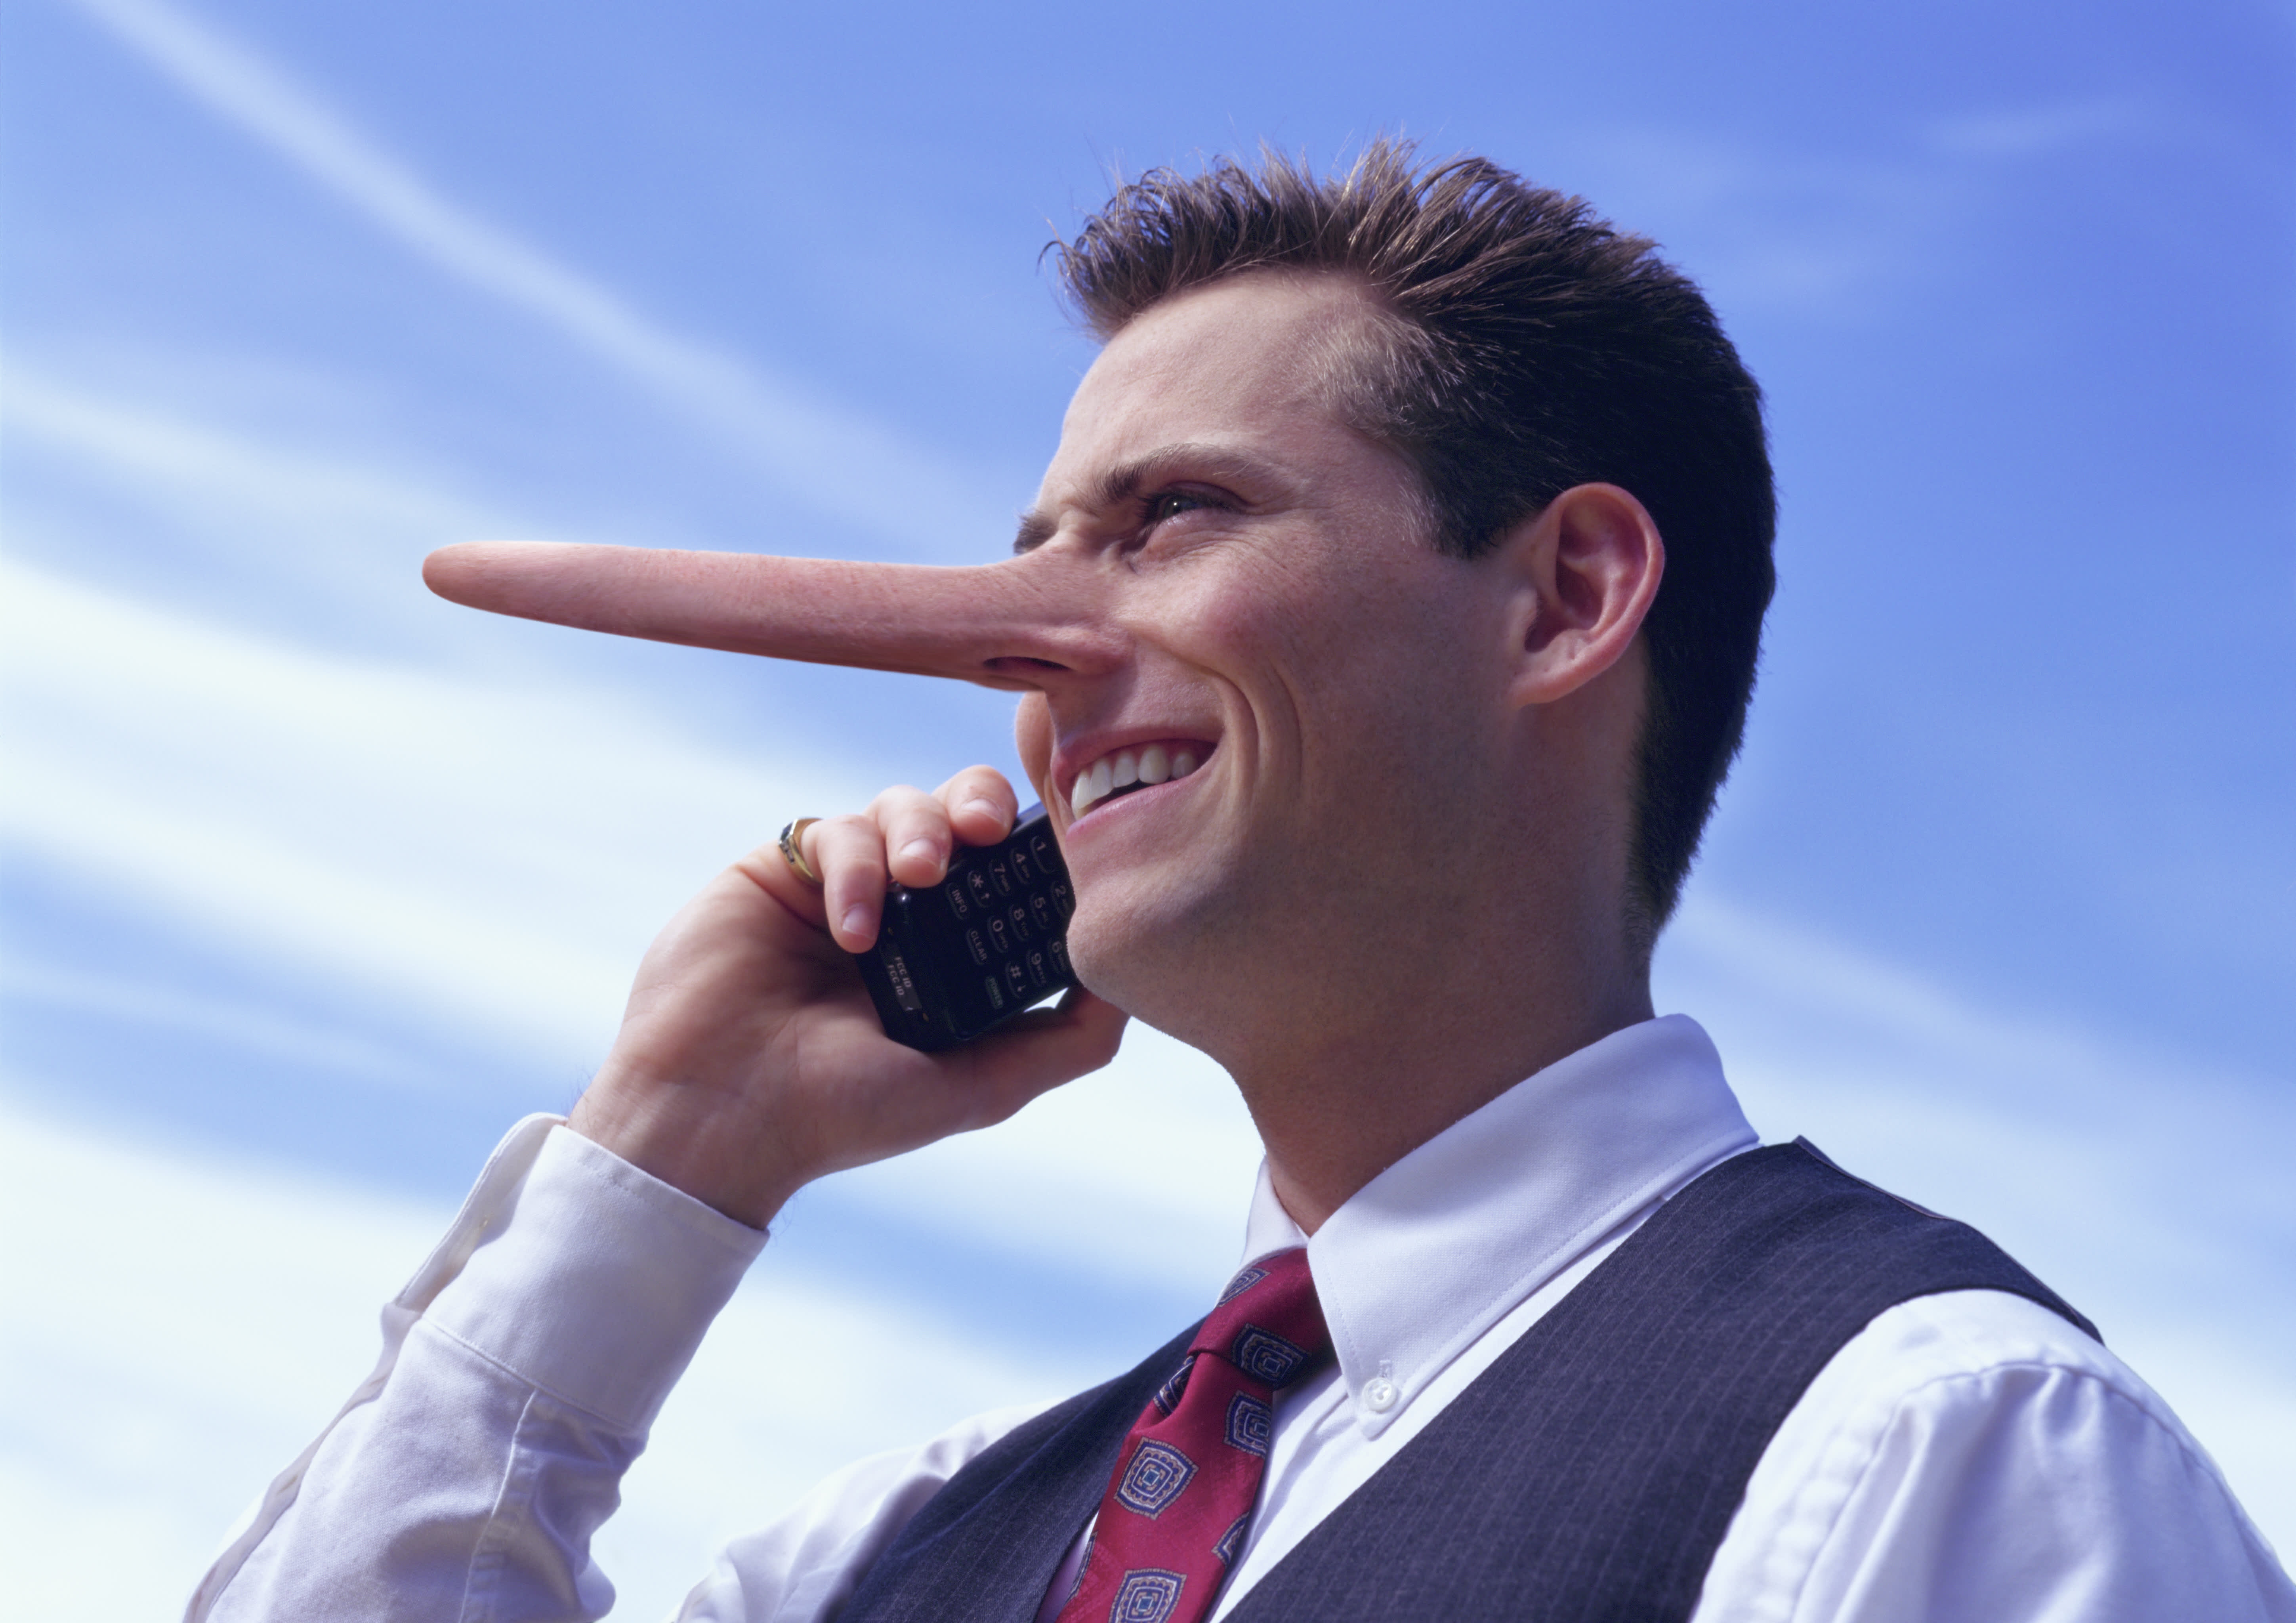 how you tell if someone is lying